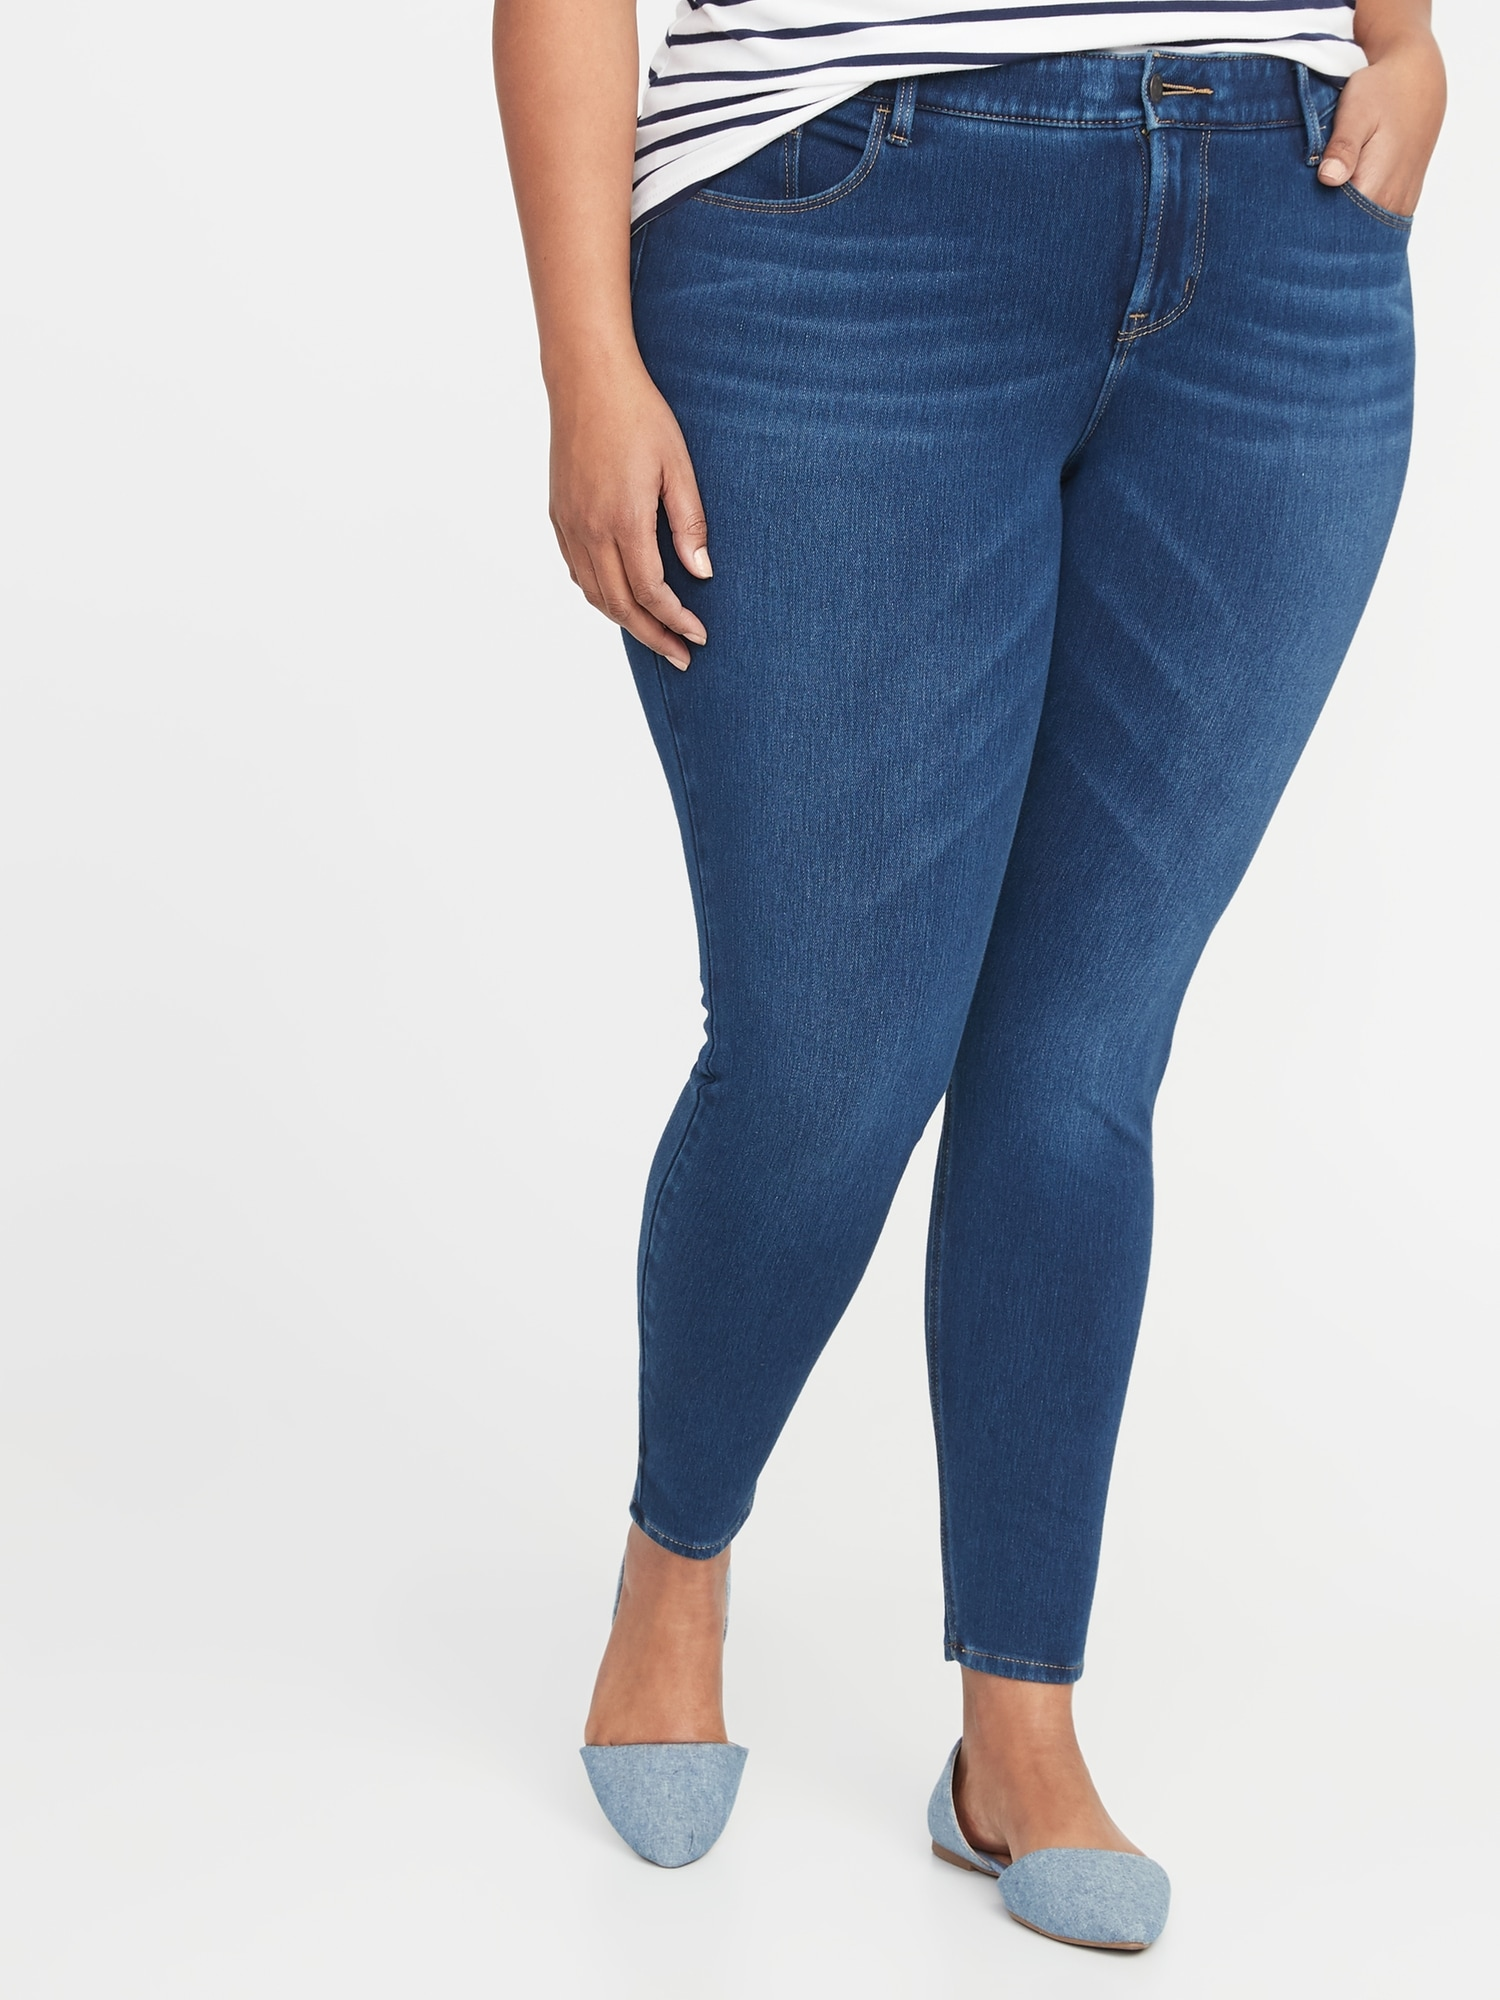 6d69f827da0 High-Rise Secret-Slim Pockets + Waistband Built-In Sculpt Plus-Size Rockstar  24 7 Jeans